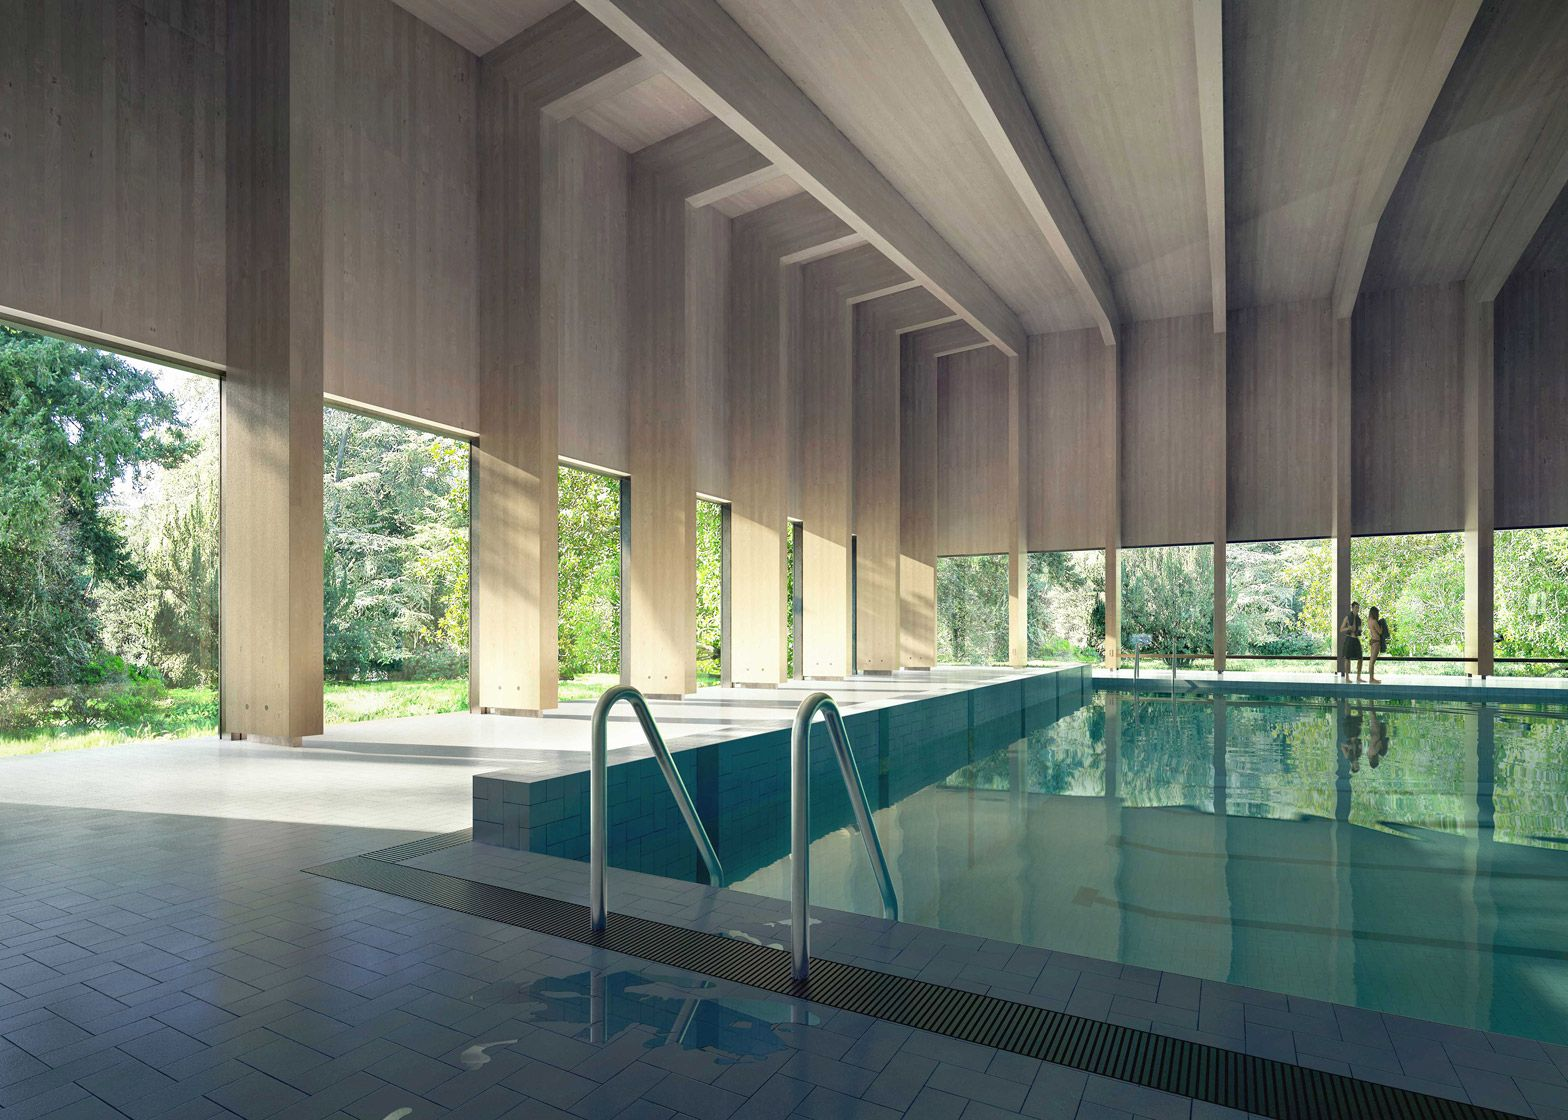 Swimming Pool Architecture Design the rooftop swimmingpool provide panoramic ocean view Hawkinsbrown Designs Pool That Will Give The Sense Of Swimming Amongst The Trees